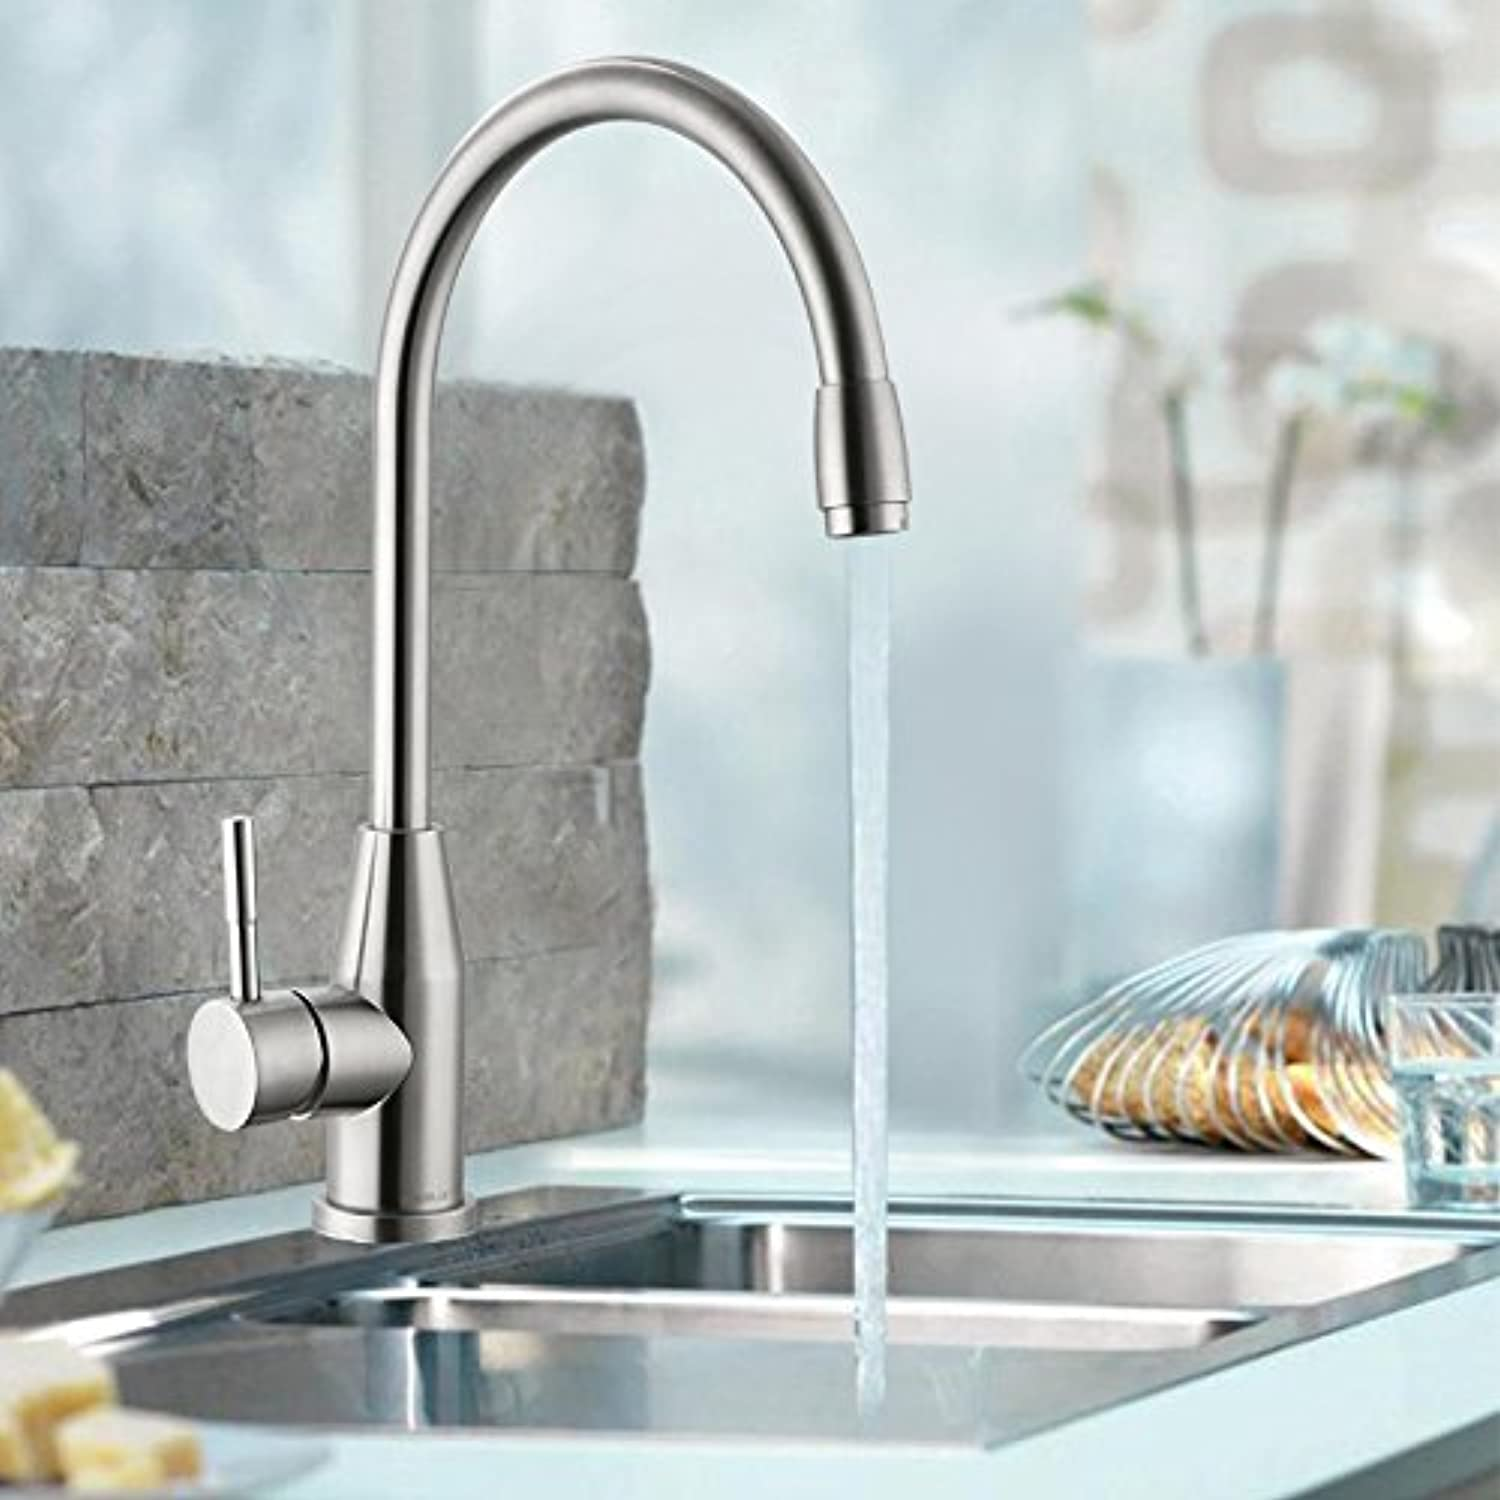 AOLOR Wash Basin Stainless Steel hot and Cold Modern Taps Kitchen Brass Faucet Bathroom Sink Waterfall Tap Mixer Water Washroom Bath Tub Shower